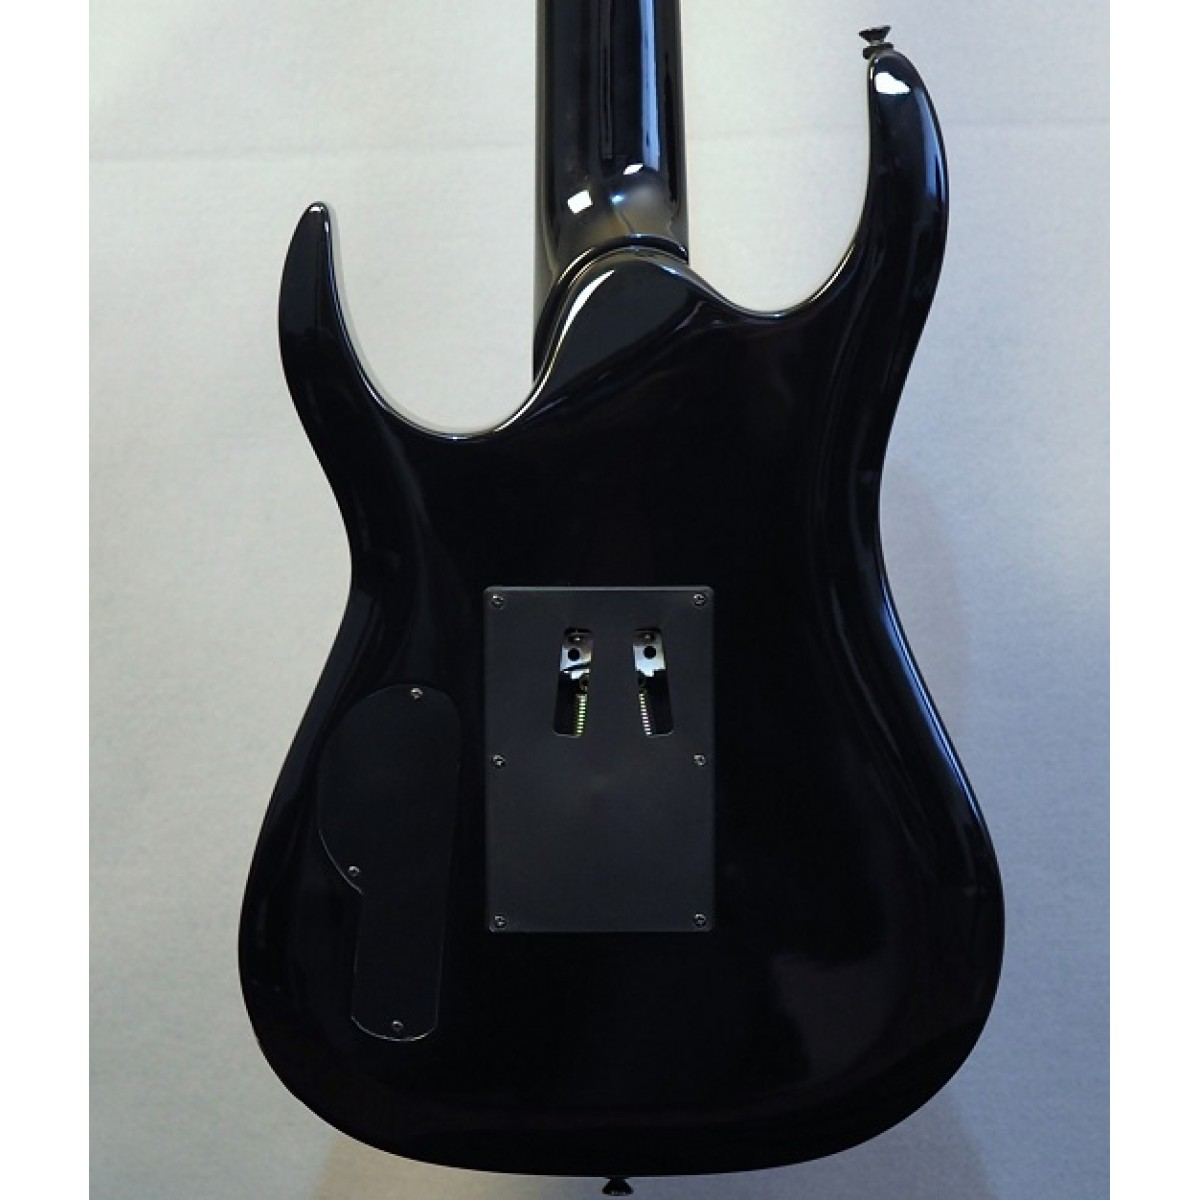 halo custom guitars merus 7 string with floyd rose. Black Bedroom Furniture Sets. Home Design Ideas